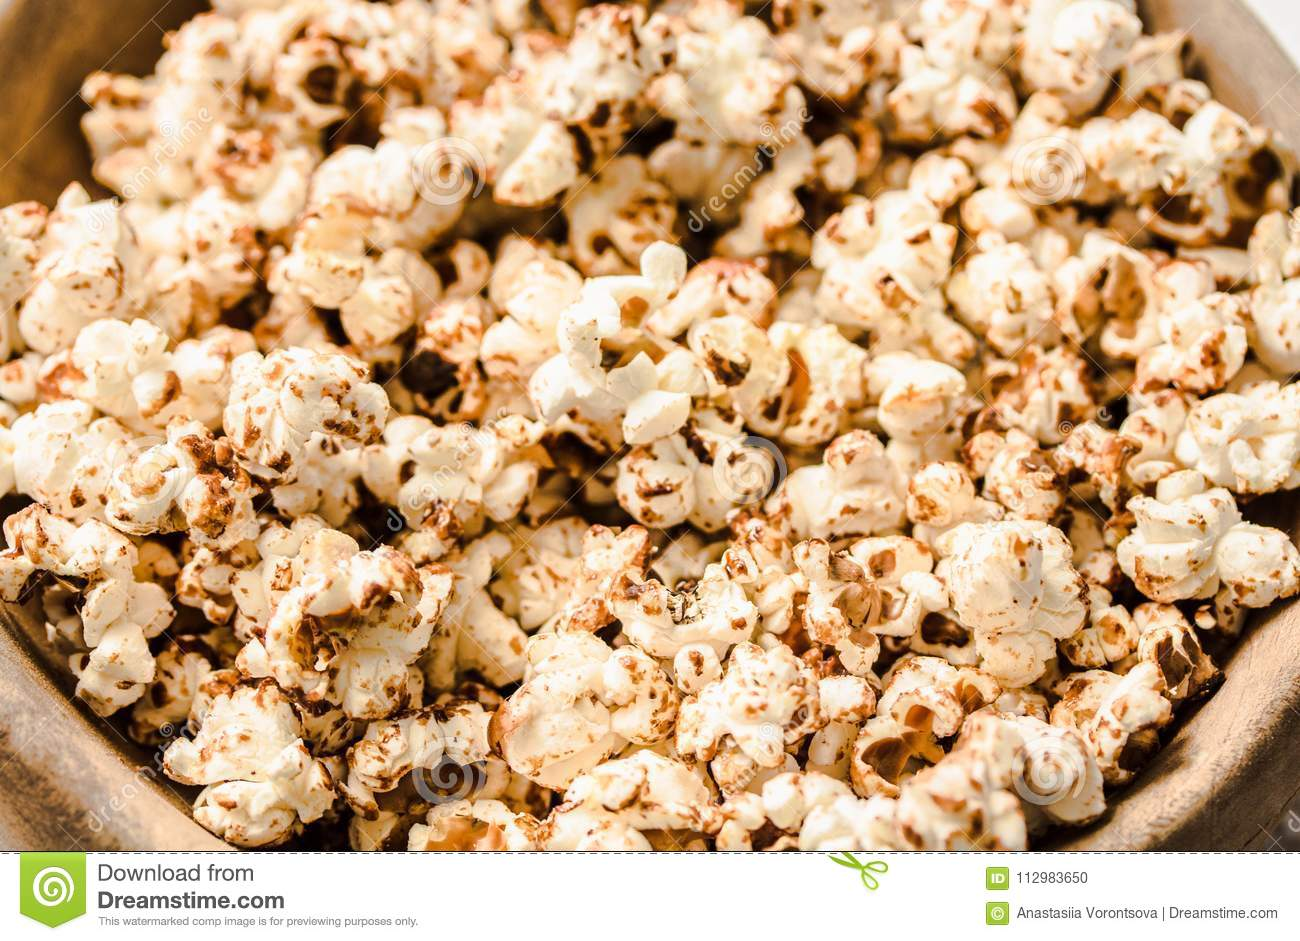 Sweet caramel vegan popcorn in a wooden plate. Snack for the movie. Rustic.light background. Macro. Top view.